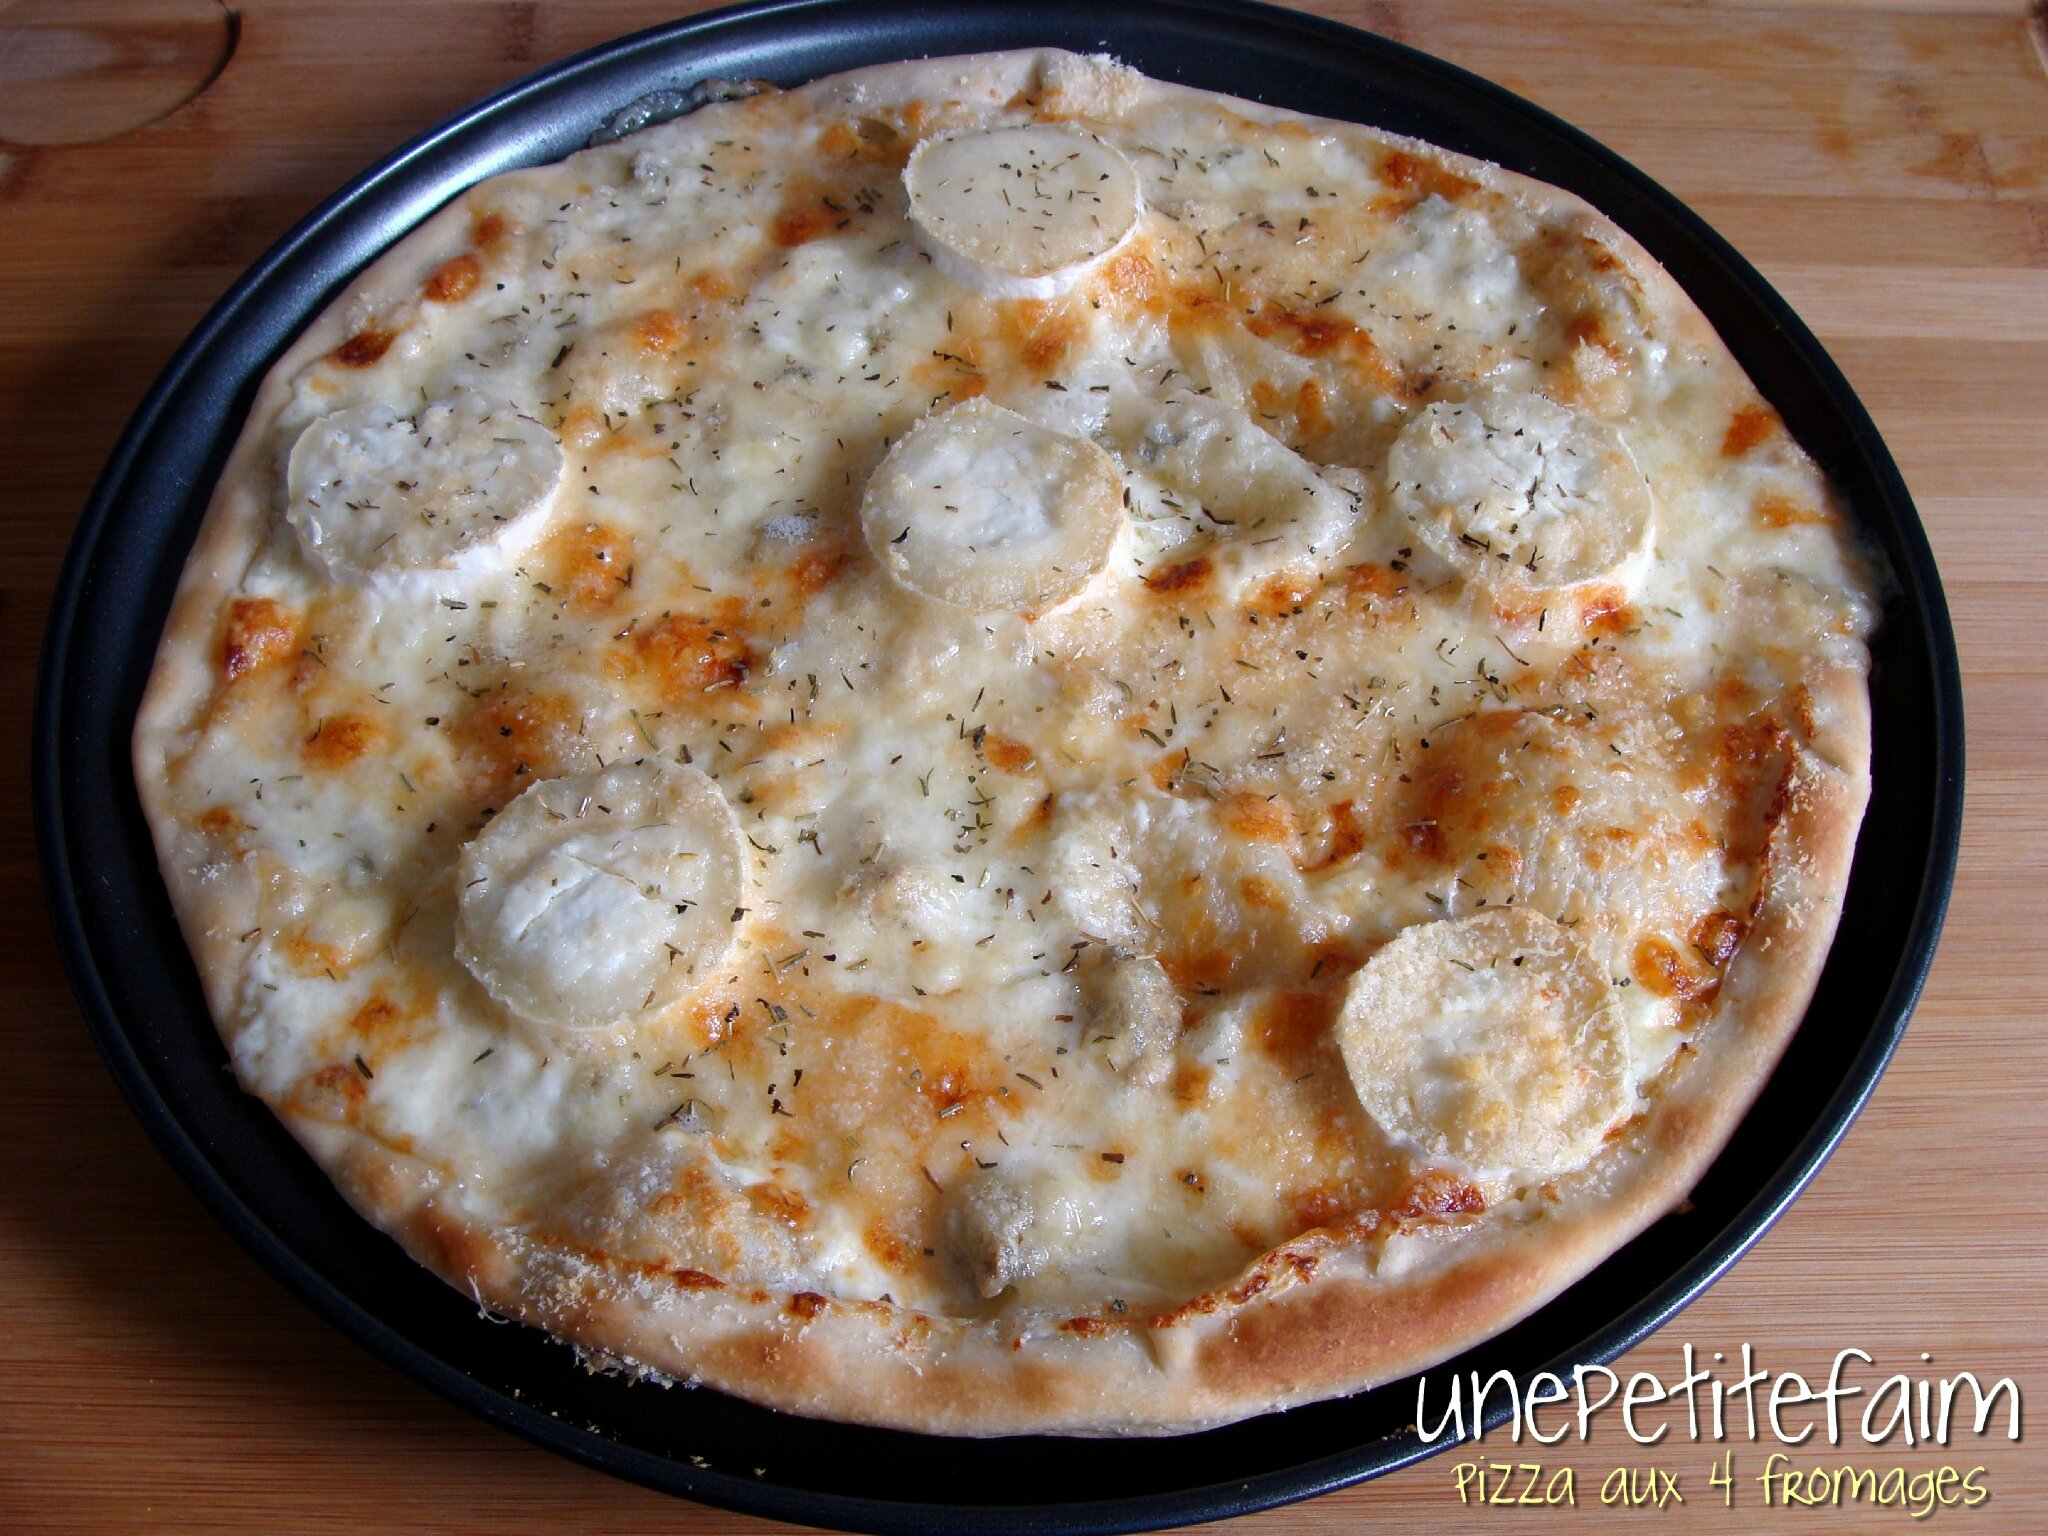 Fromage Aux Pizza Aux 4 Fromages